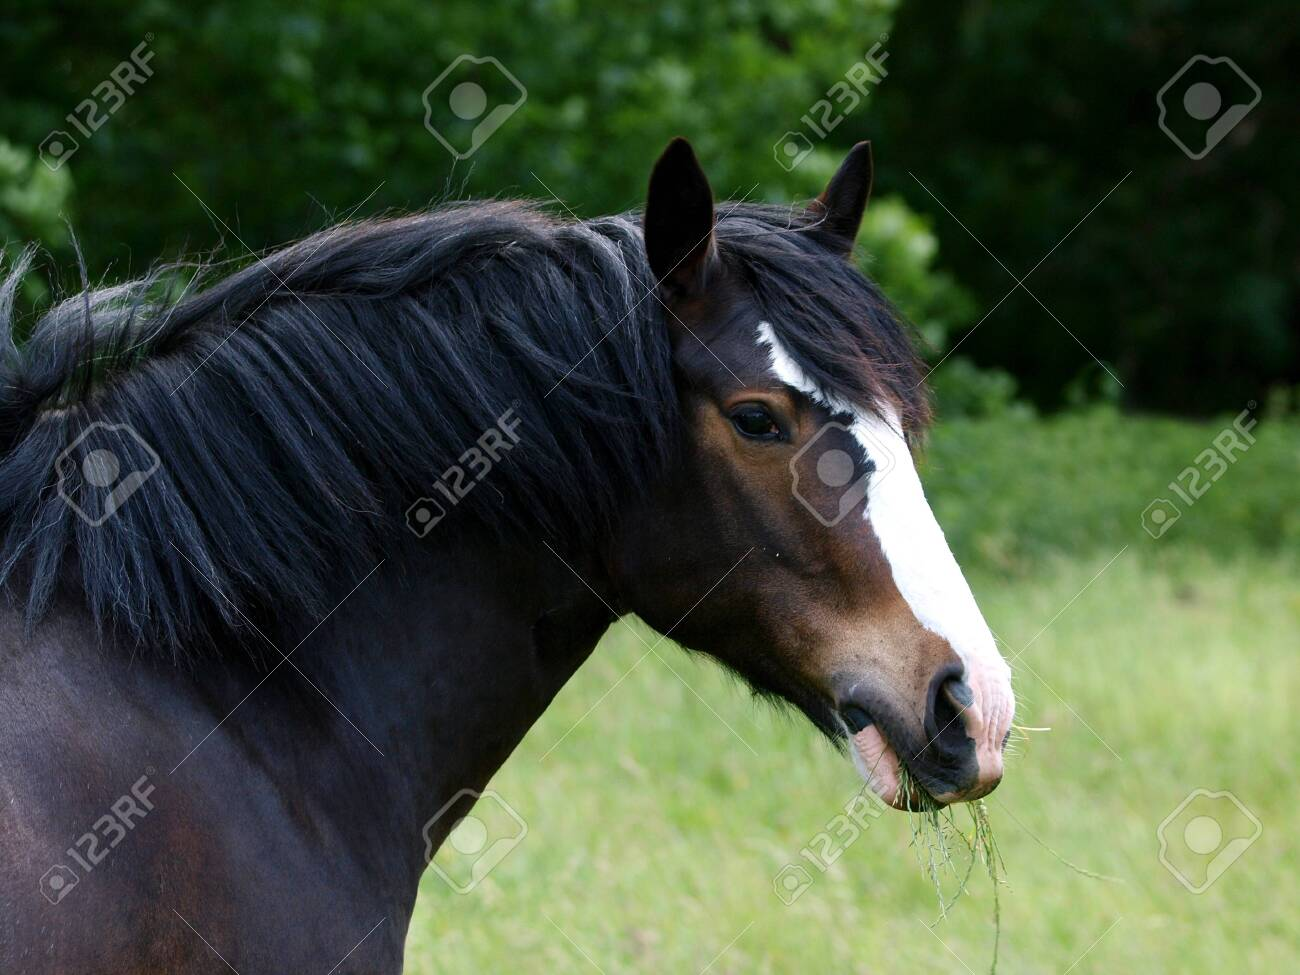 A Dark Bay Part Bred Shire Horse At Liberty In A Grassy Summer Stock Photo Picture And Royalty Free Image Image 143128503